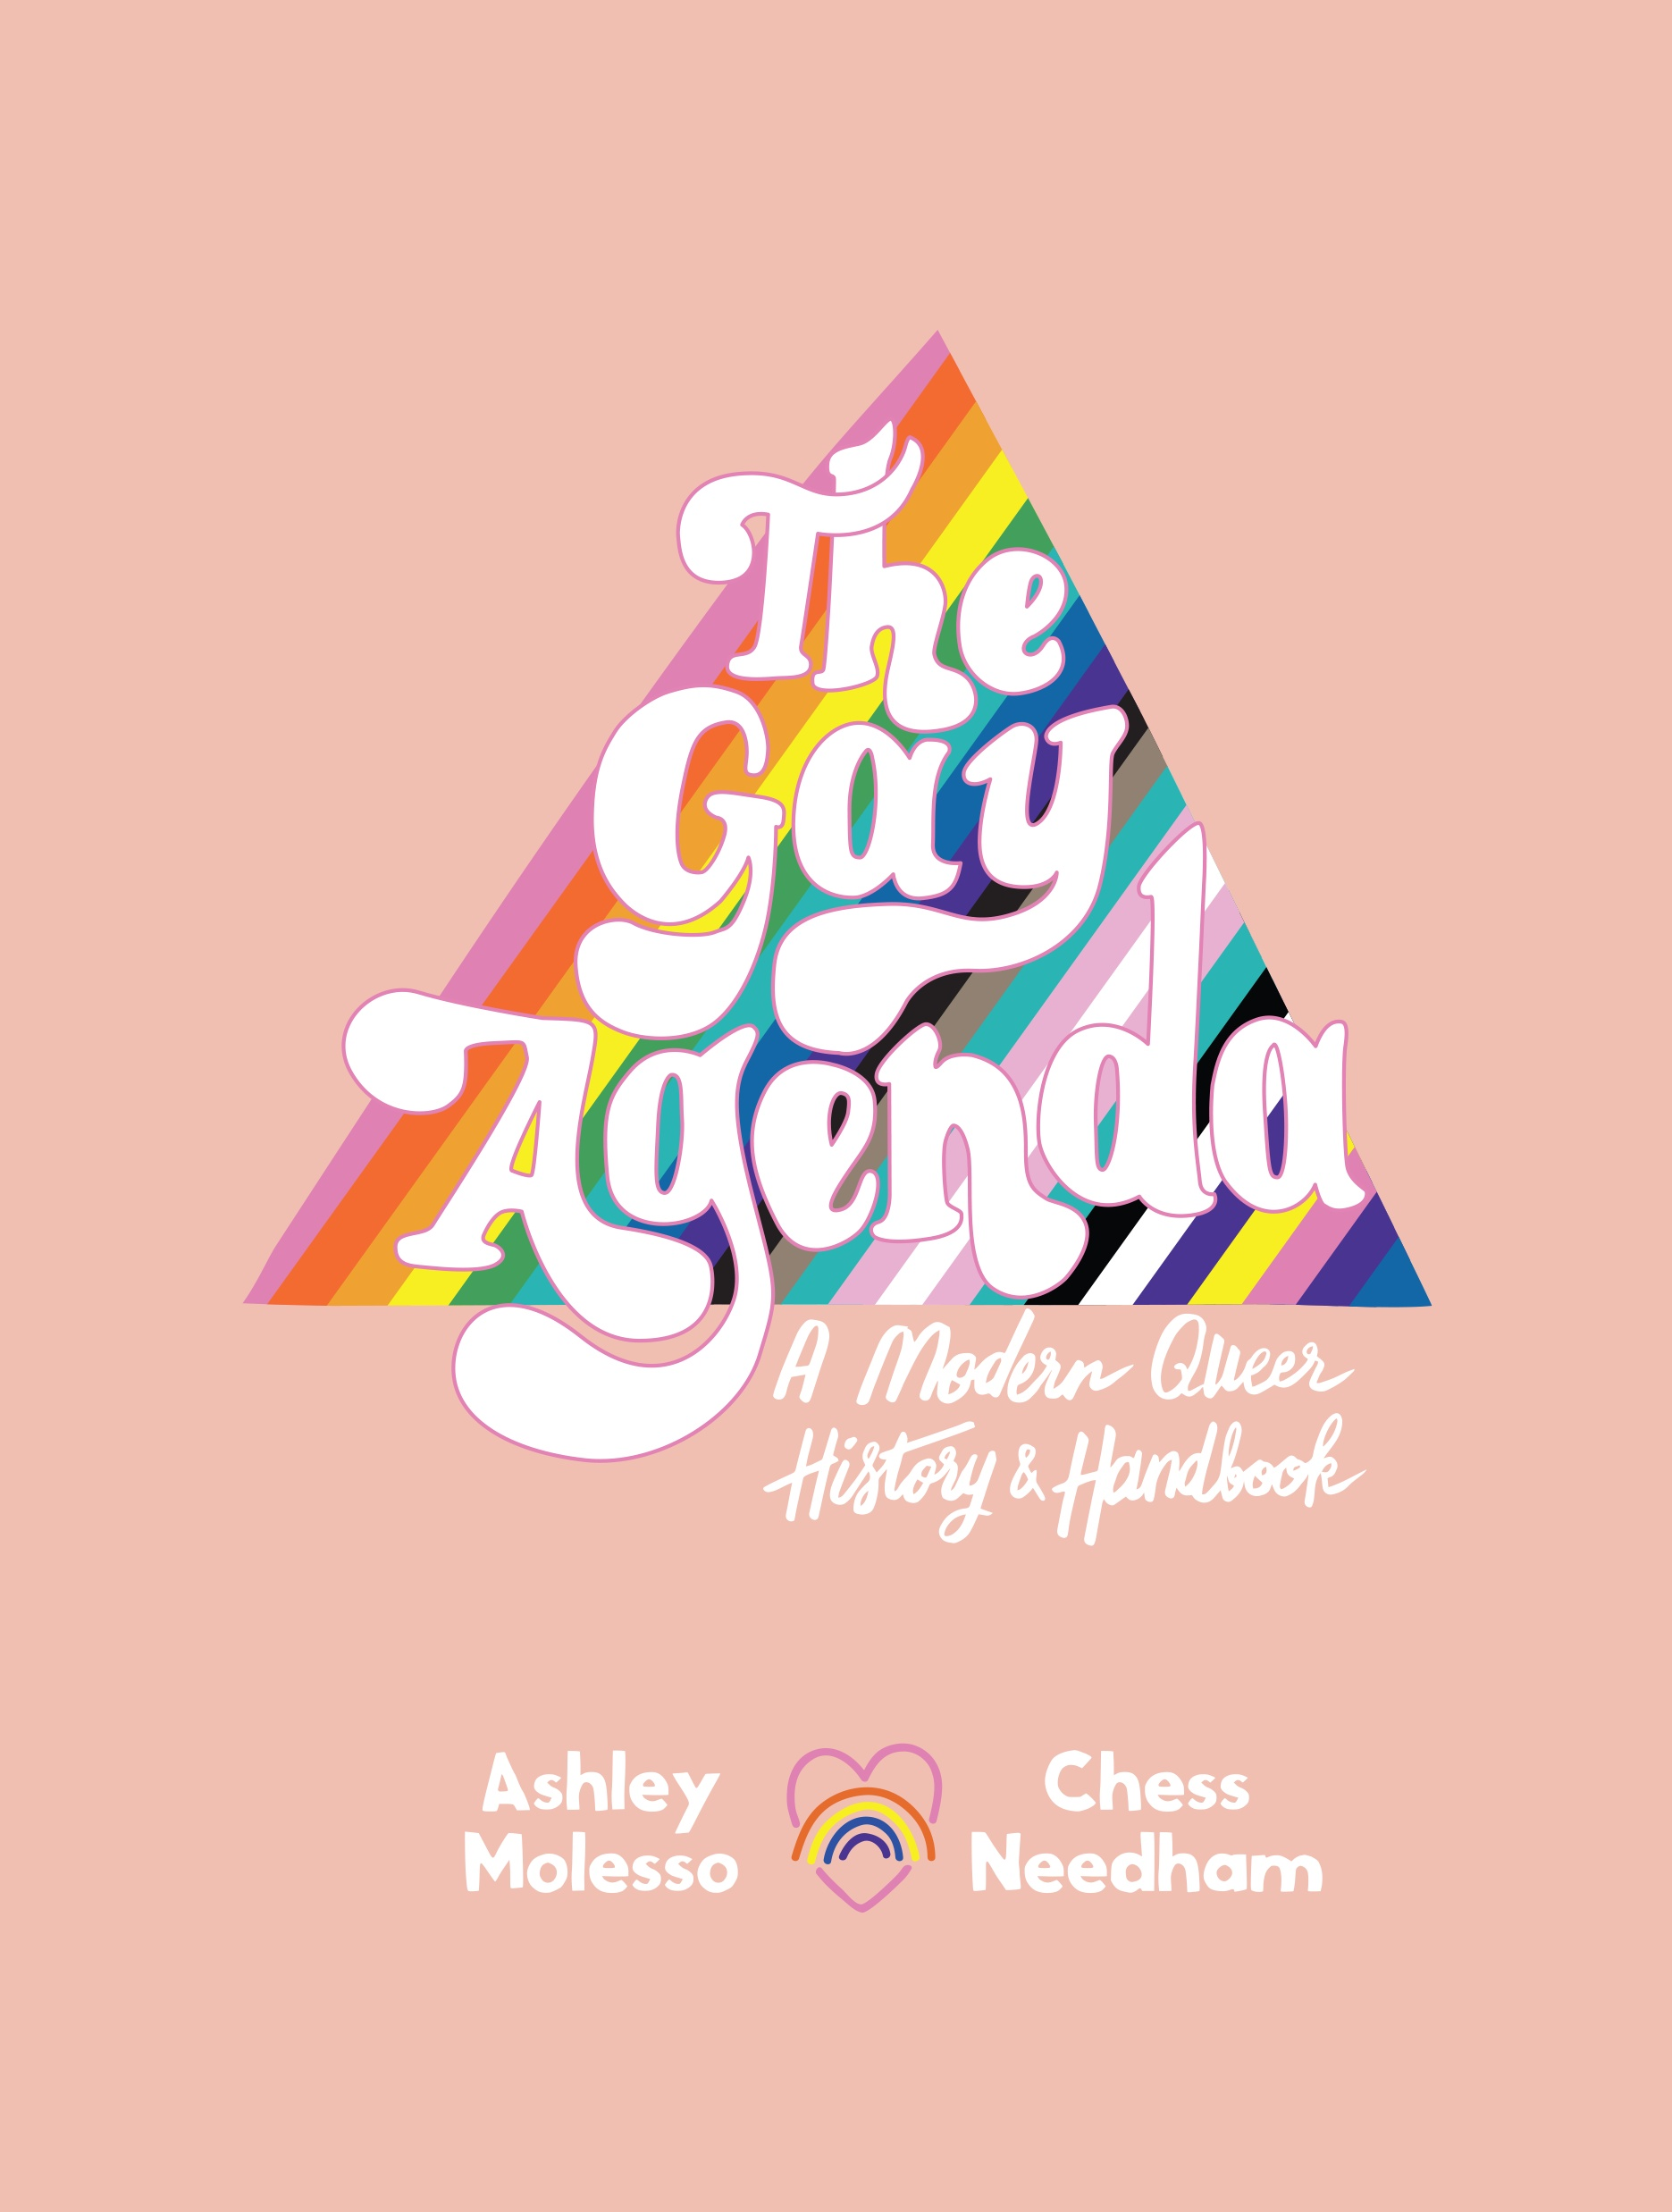 Book Launch: The Gay Agenda by Ash & Chess (POSTPONED)